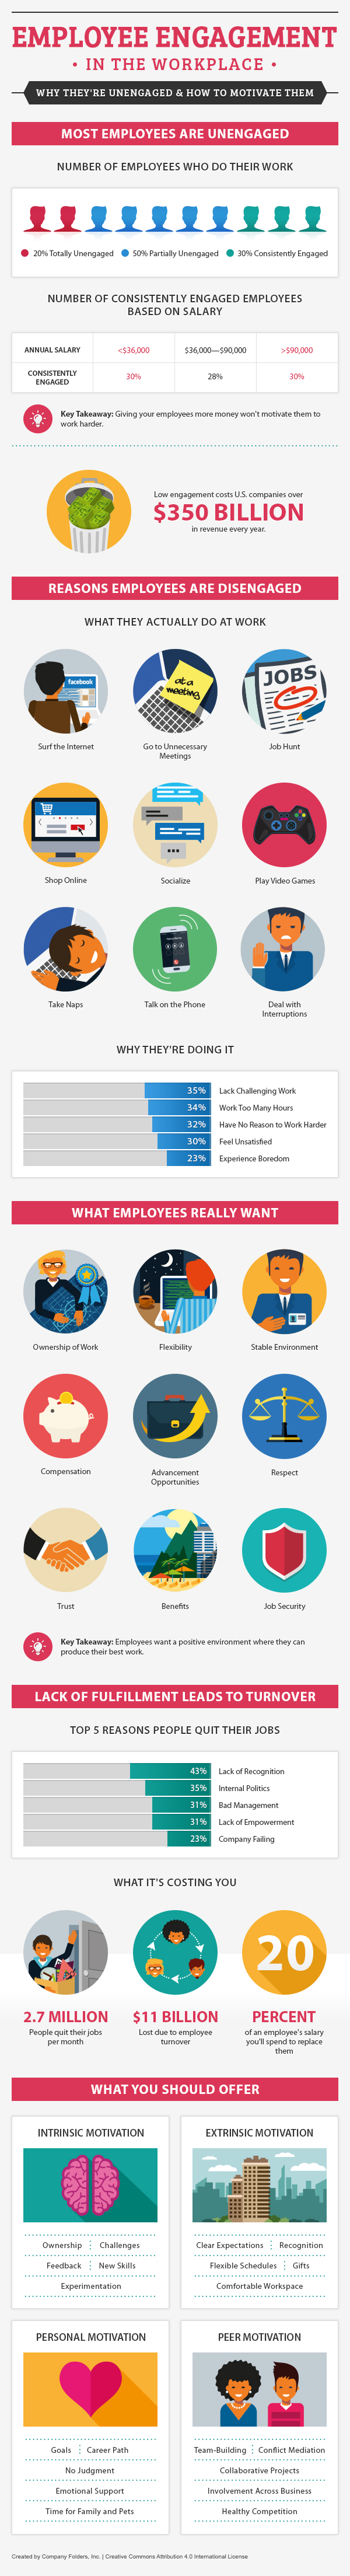 employee-engagement-in-the-workplace